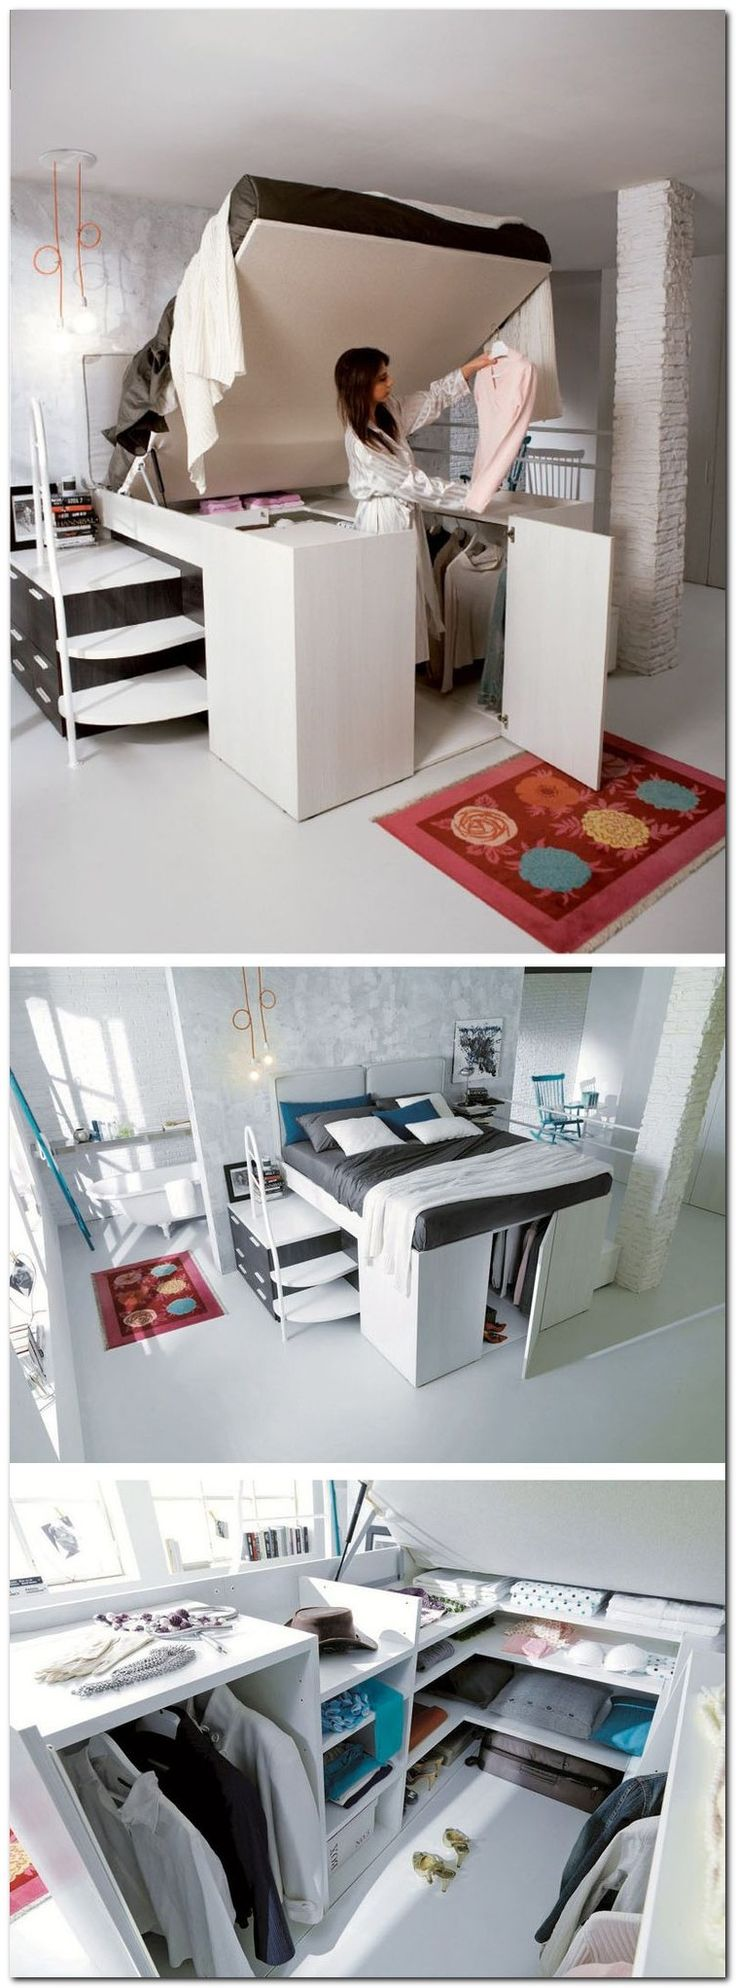 Best 25+ Small Bedroom Organization Ideas On Pinterest | Decorating Small  Bedrooms, Small Desk Bedroom And Small Bedroom Storage